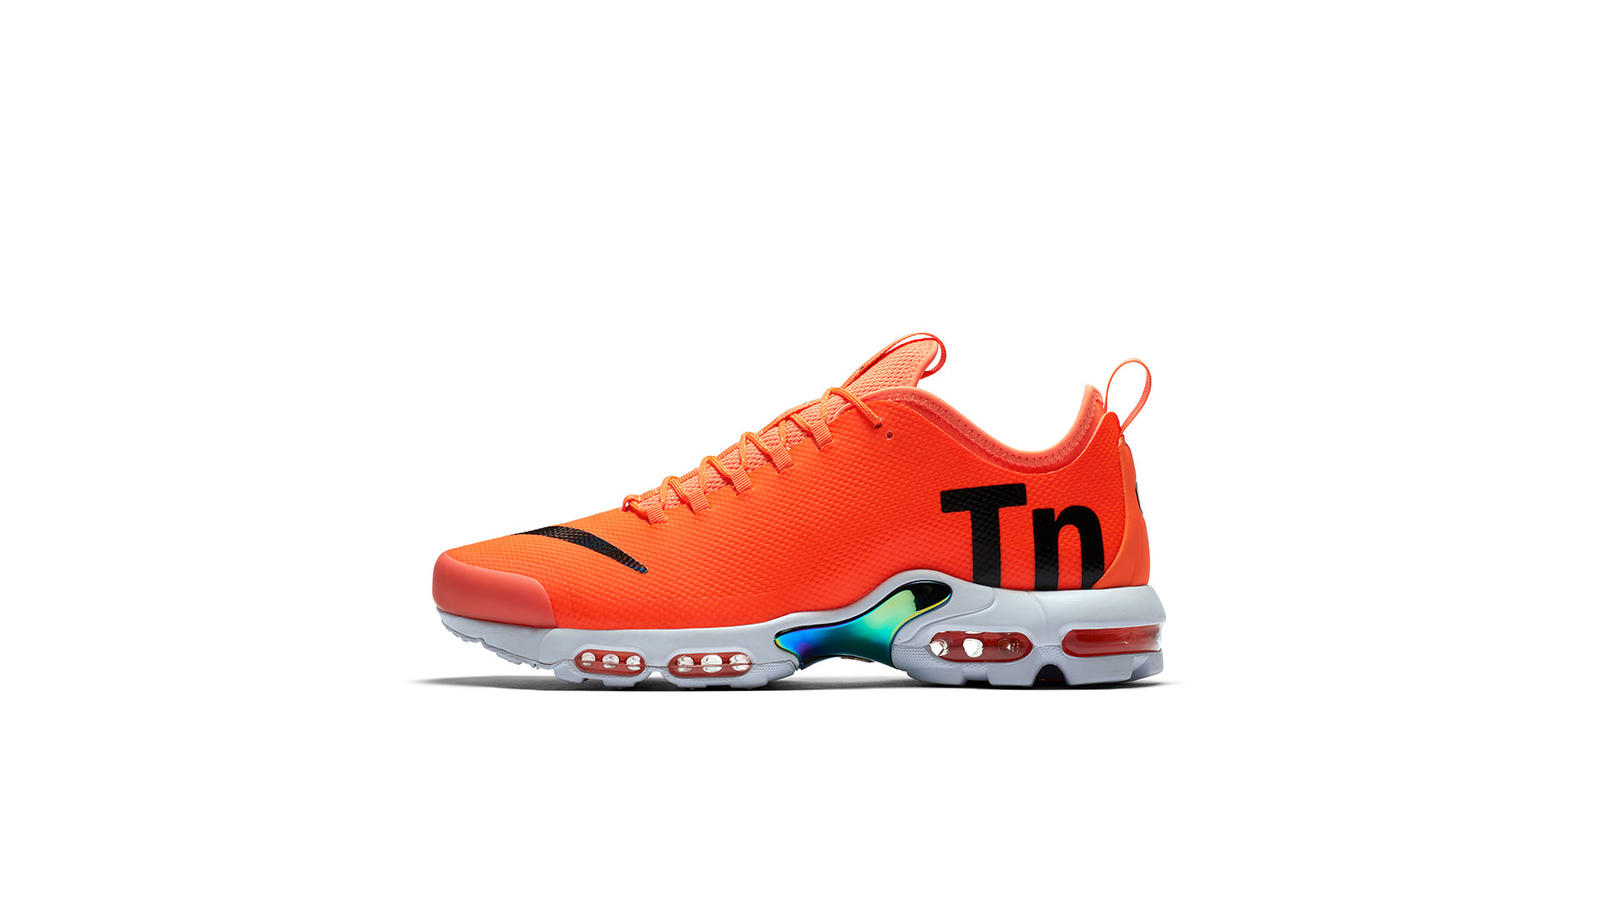 finest selection 1816e 01aaf Nike Mercurial TN - Nike News